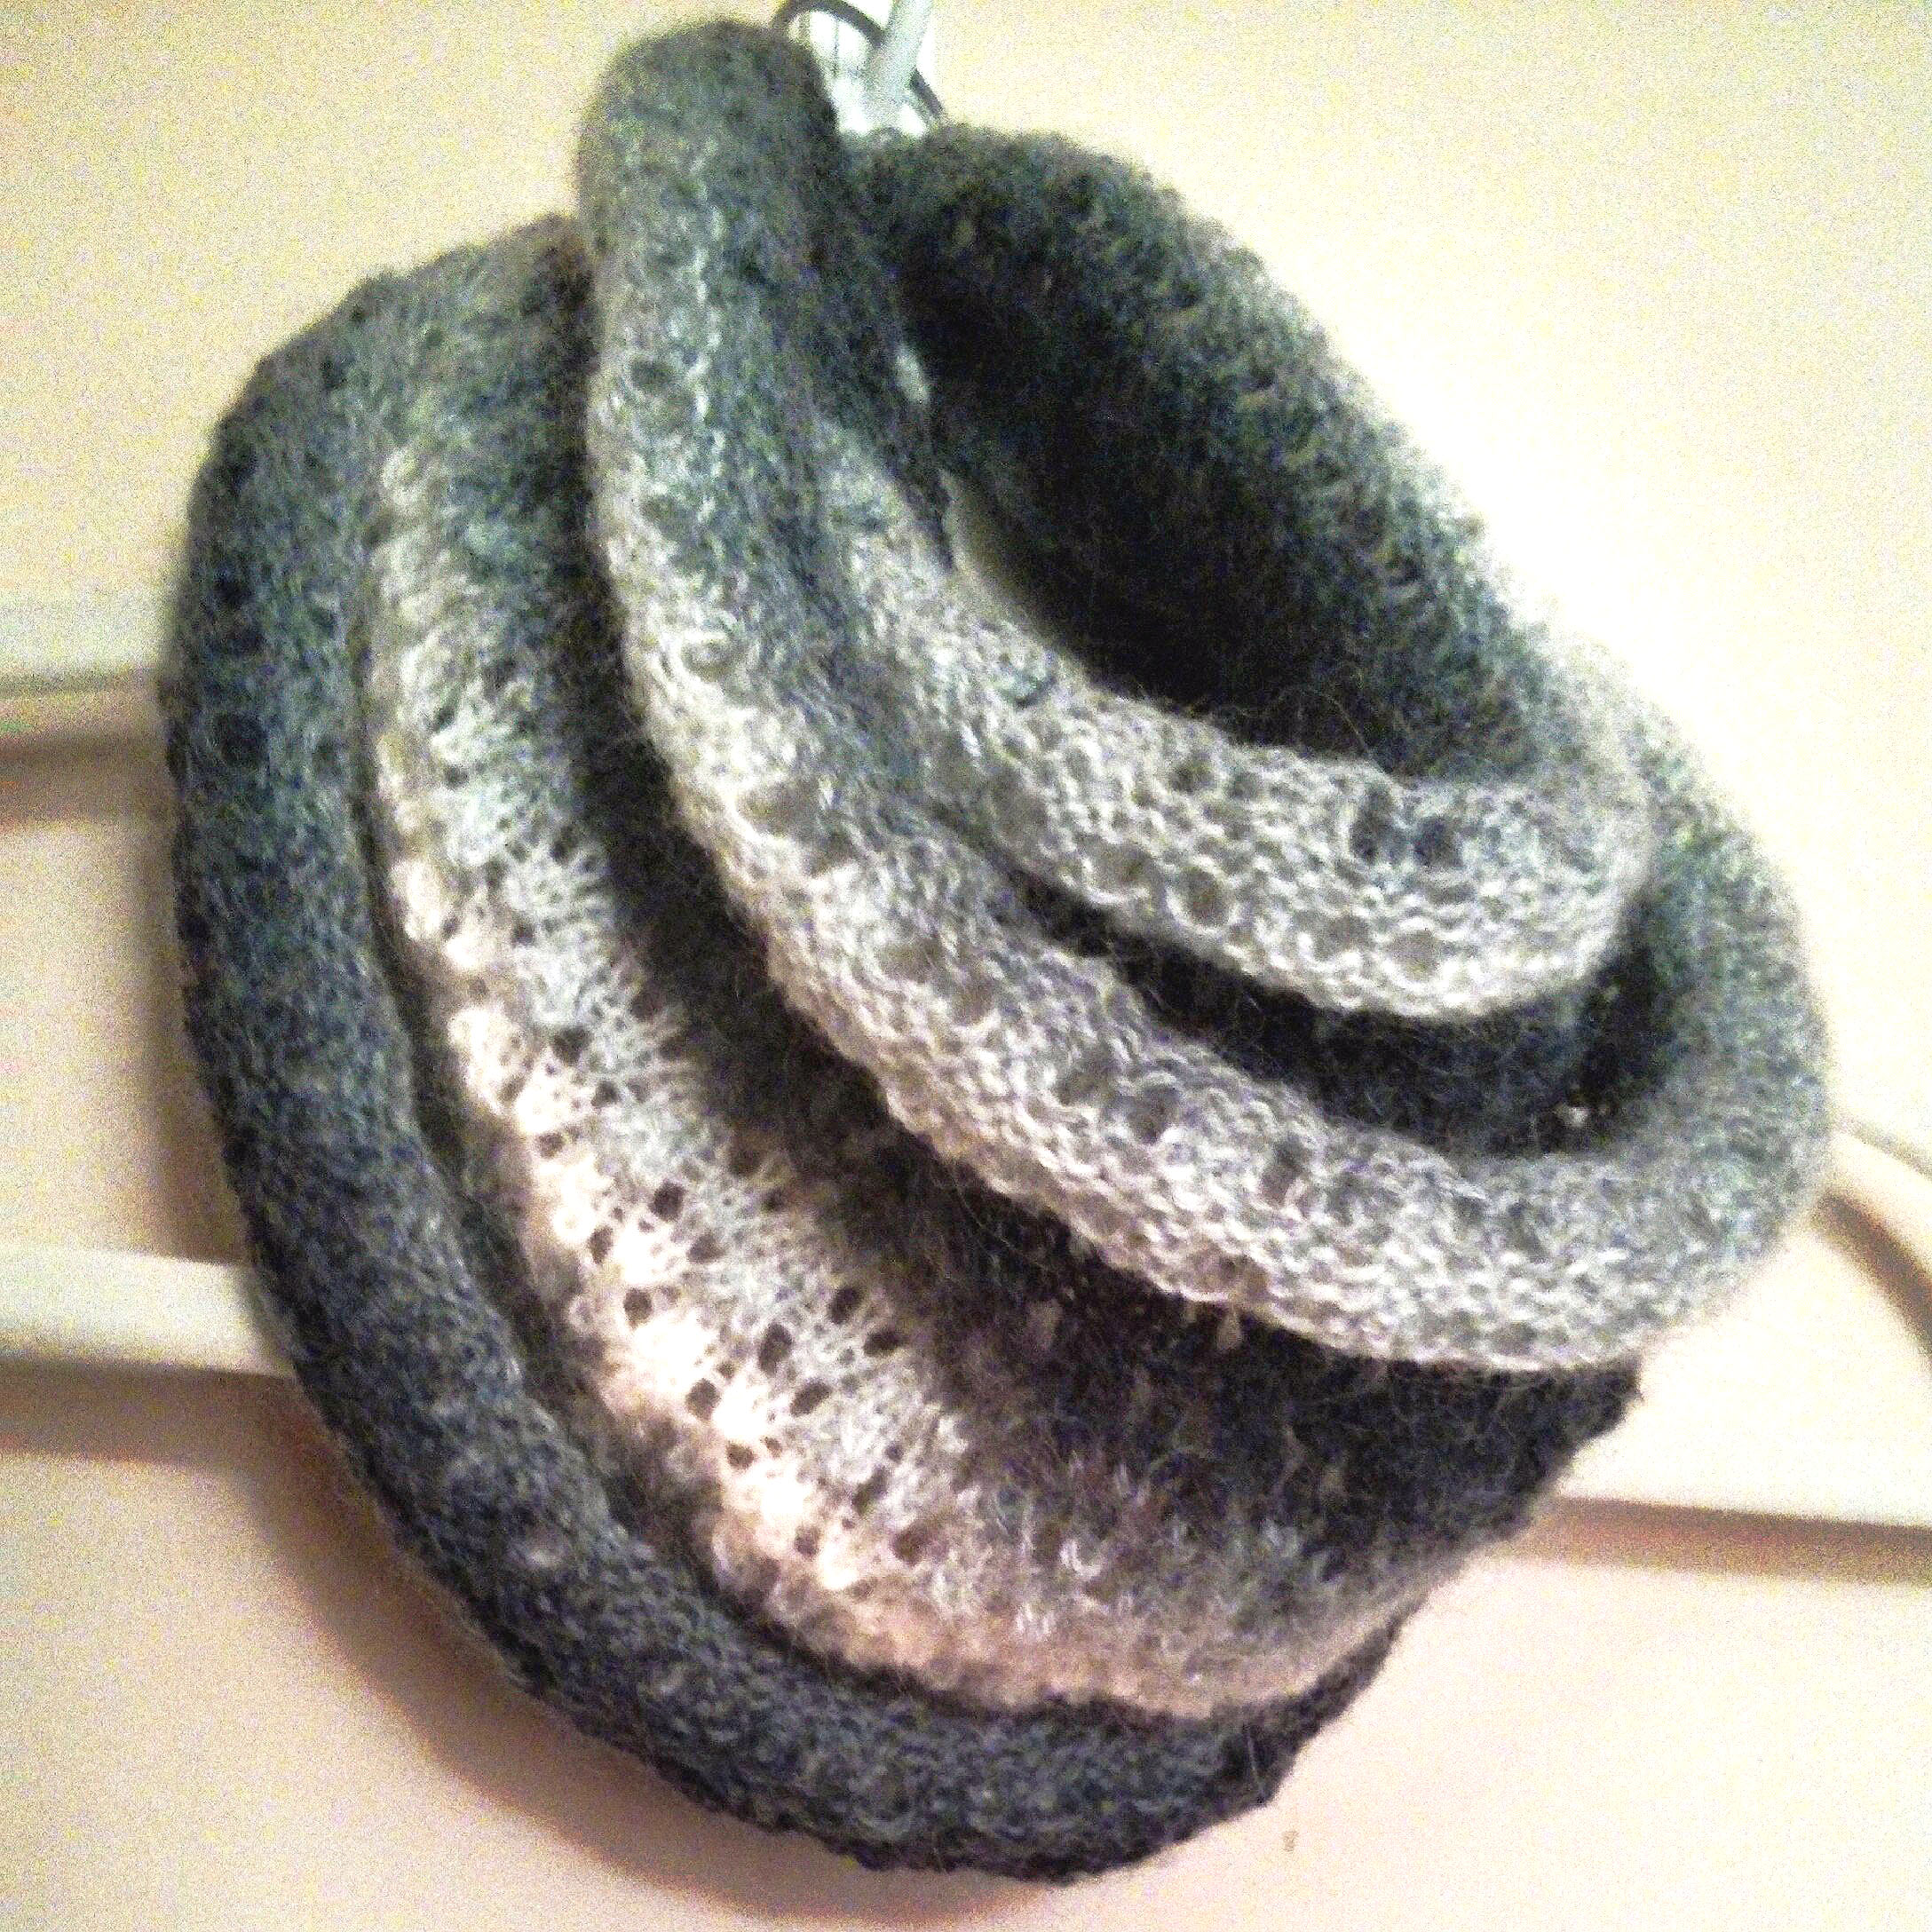 Simple Knit Purl Scarf Patterns : Simple Mohair Lace Scarf Curl - Purl Avenue